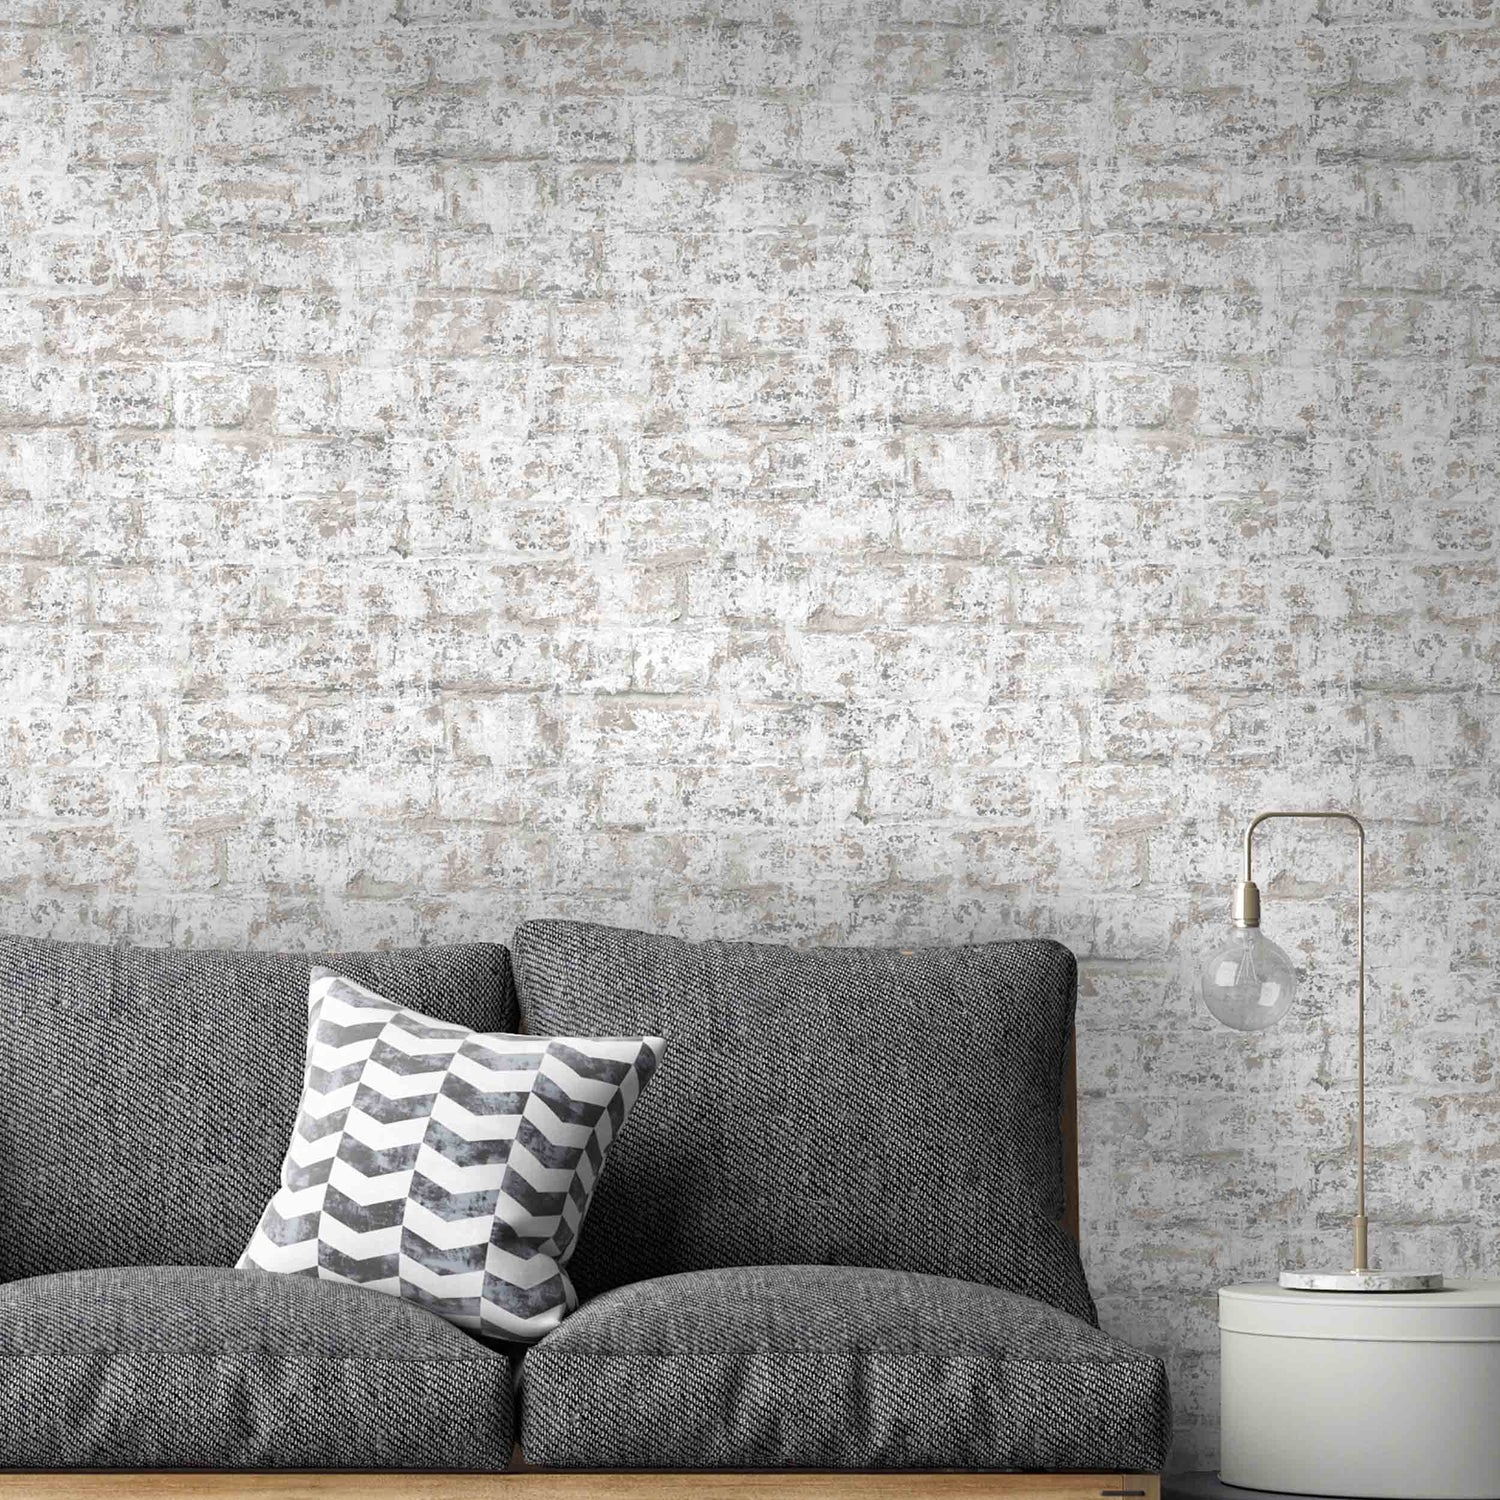 Plaster Brick Effect Wallpaper By Argent & Ink